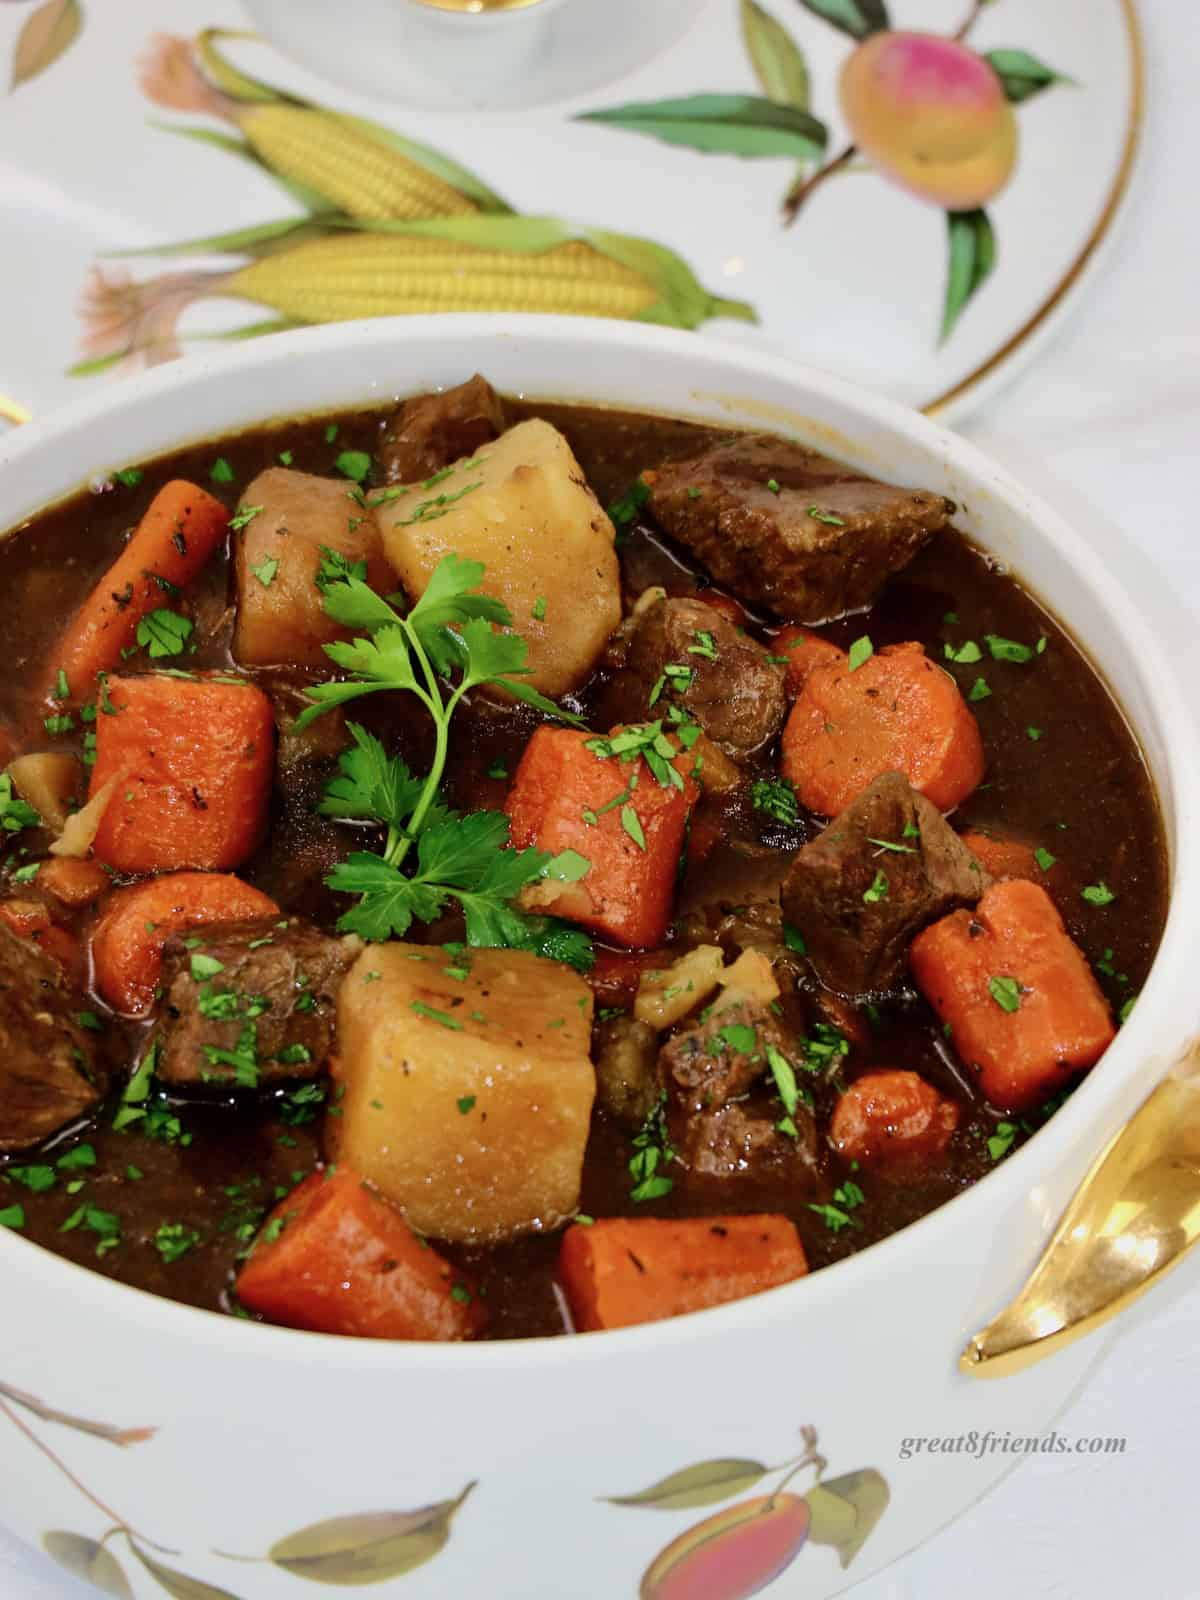 Beef stew in a ceramic casserole decorated with fruit.